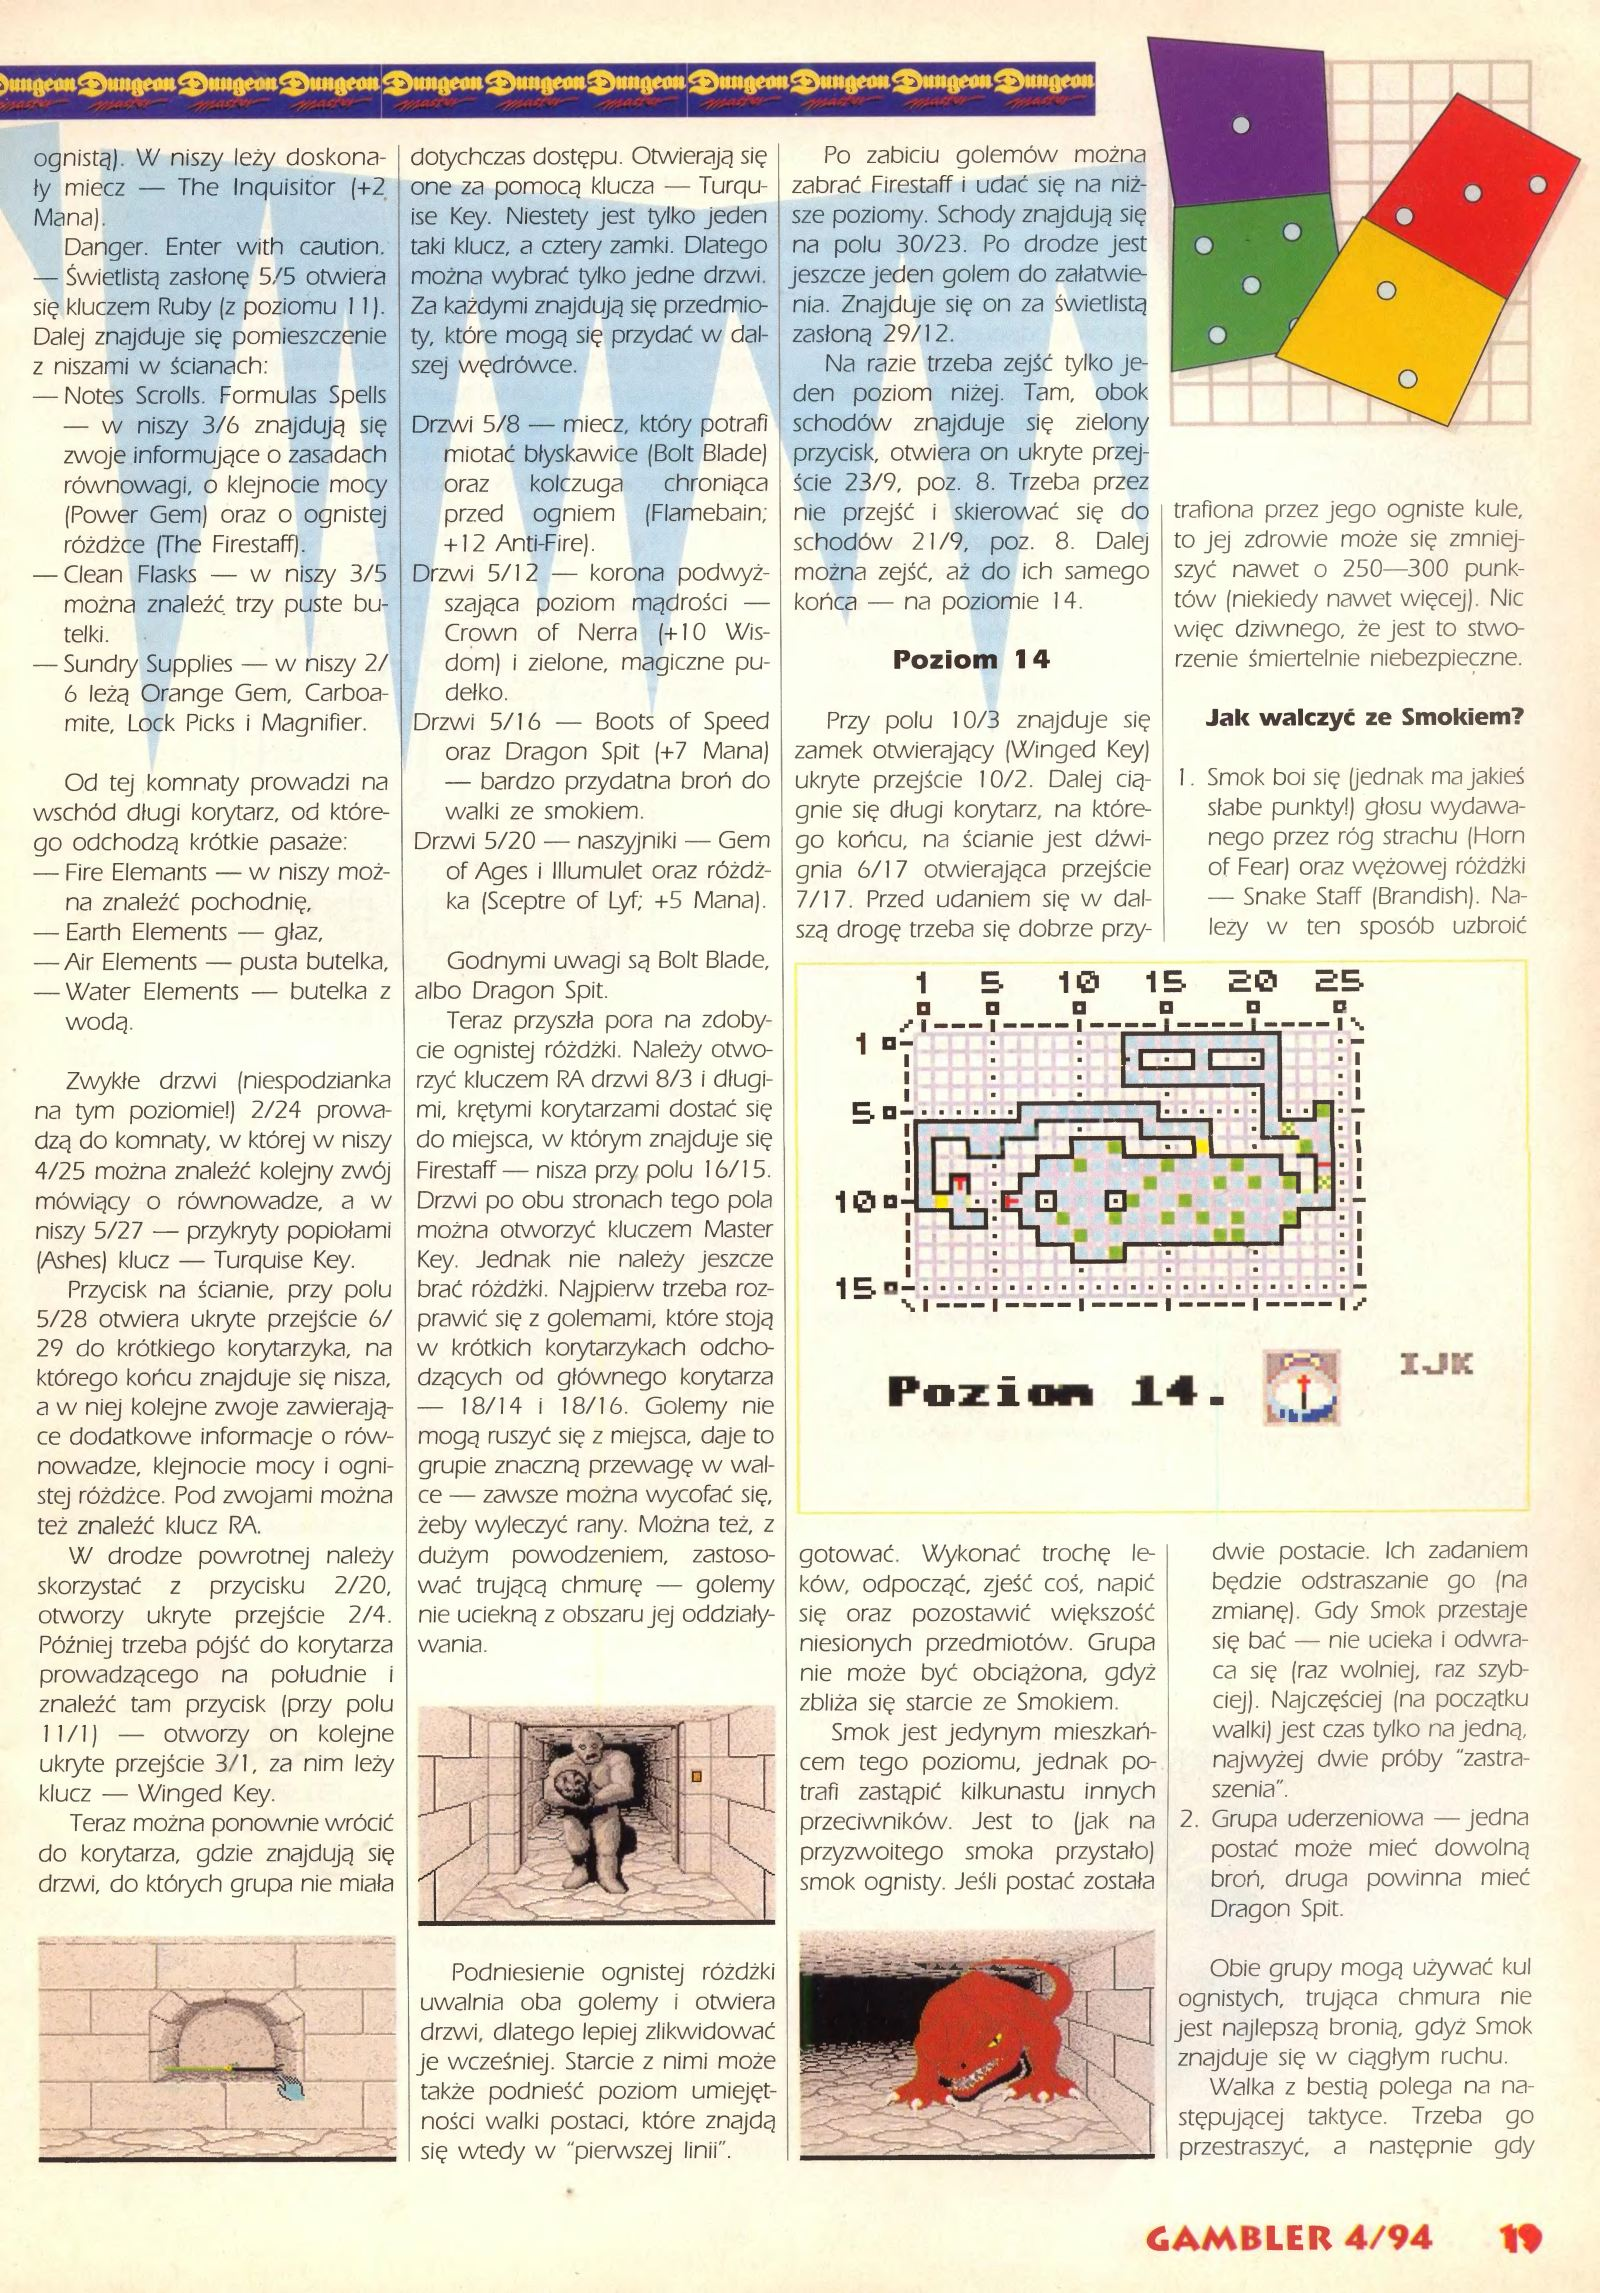 Dungeon Master Guide published in Polish magazine 'Gambler', April 1994, Page 19